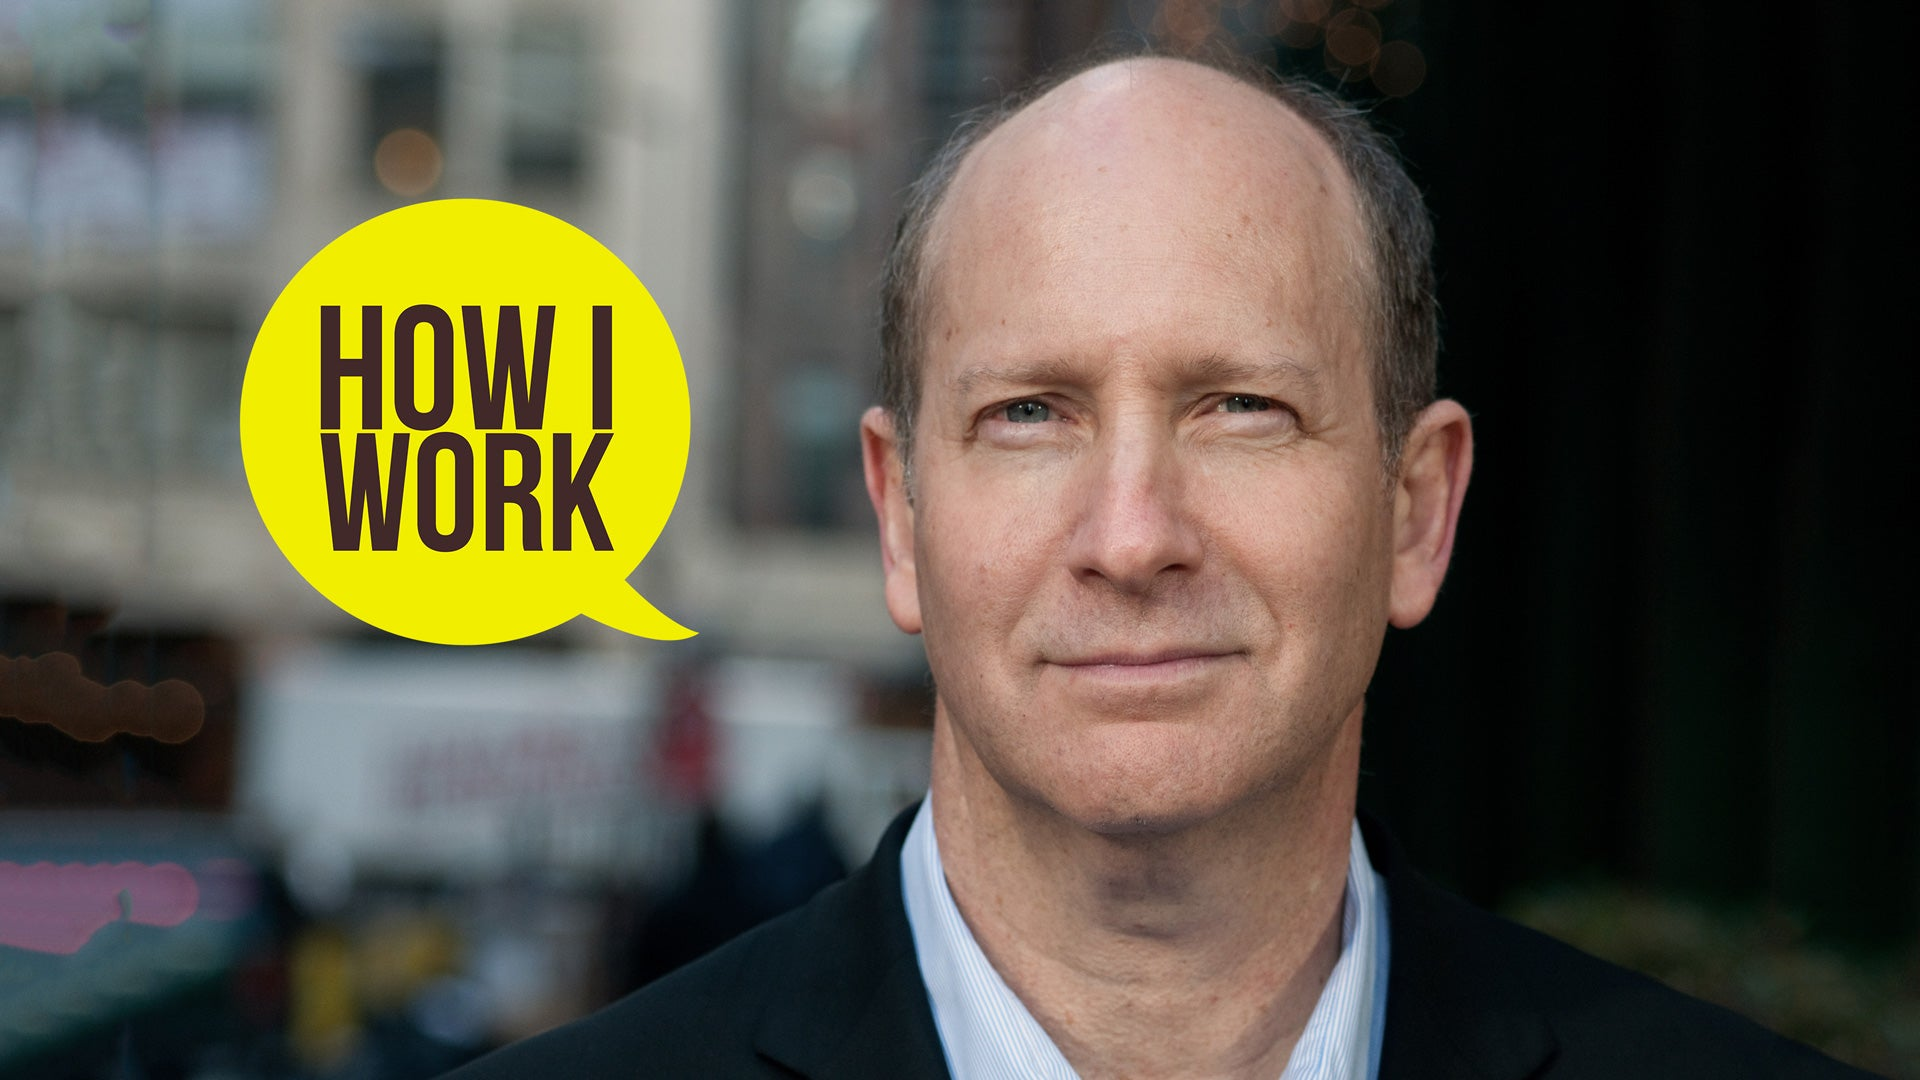 I'm Doron Weber, Alfred P. Sloan Foundation Program Director, And This Is How I Work